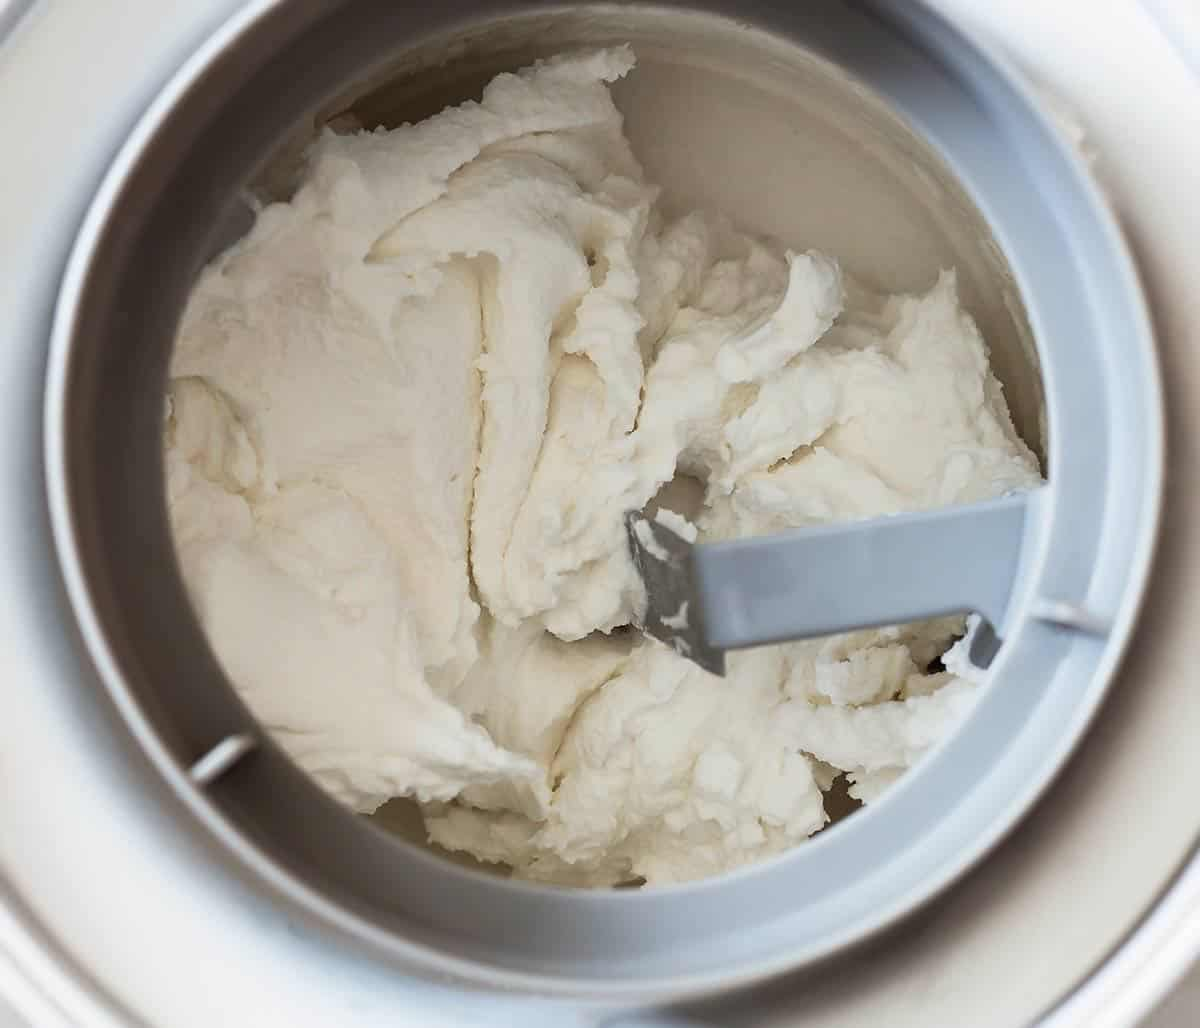 Coconut Ice Cream Base being churned in ice cream maker